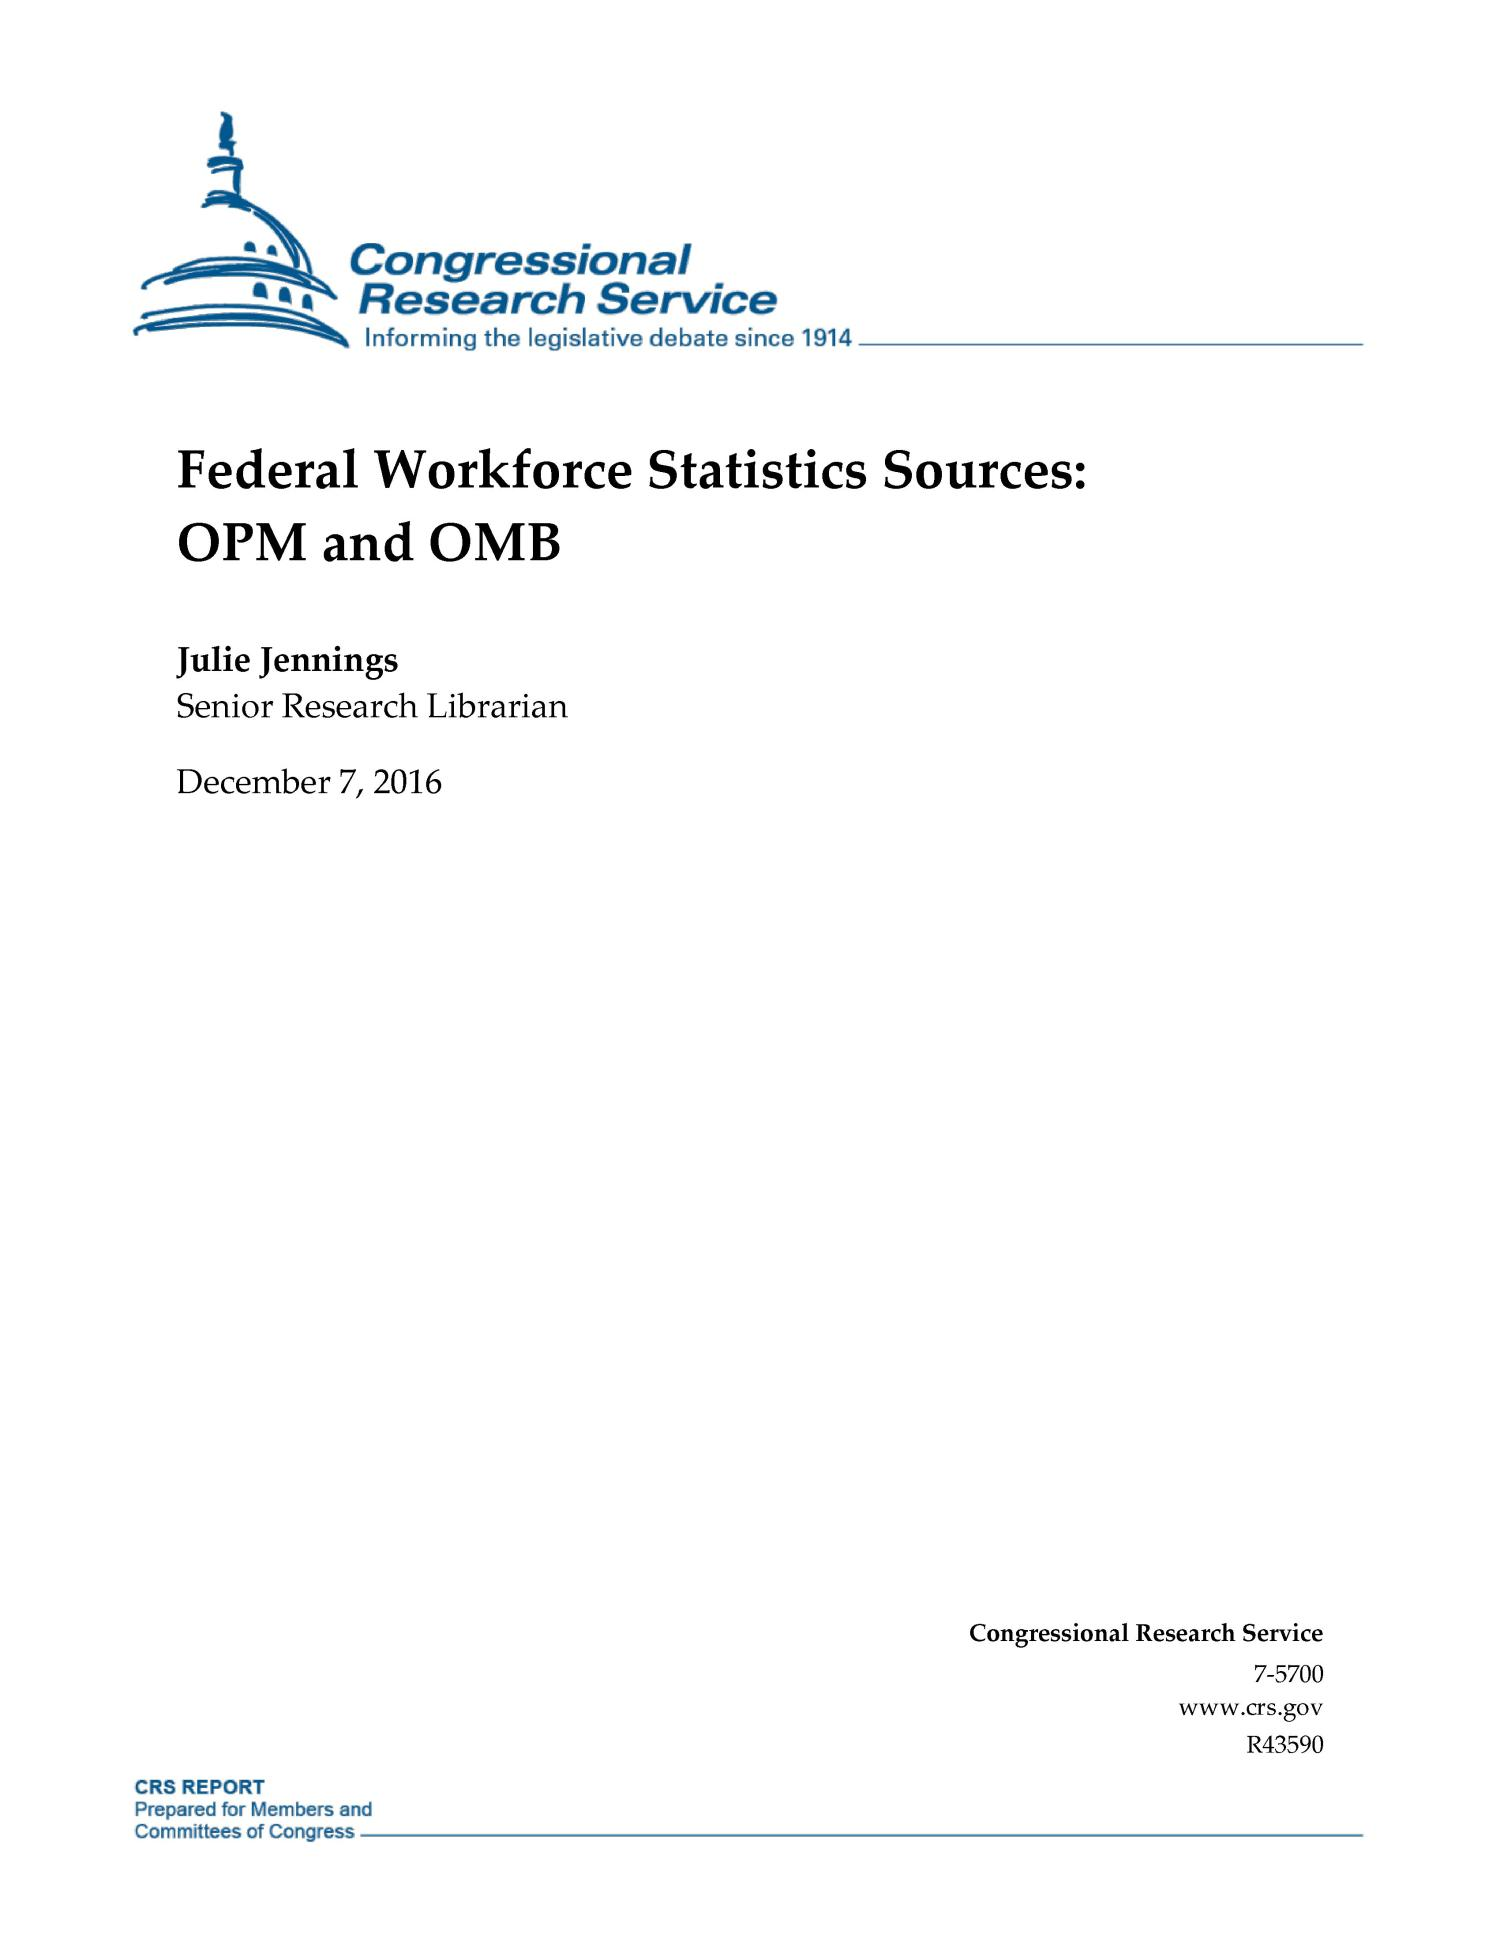 Federal Workforce Statistics Sources: OPM and OMB                                                                                                      [Sequence #]: 1 of 10